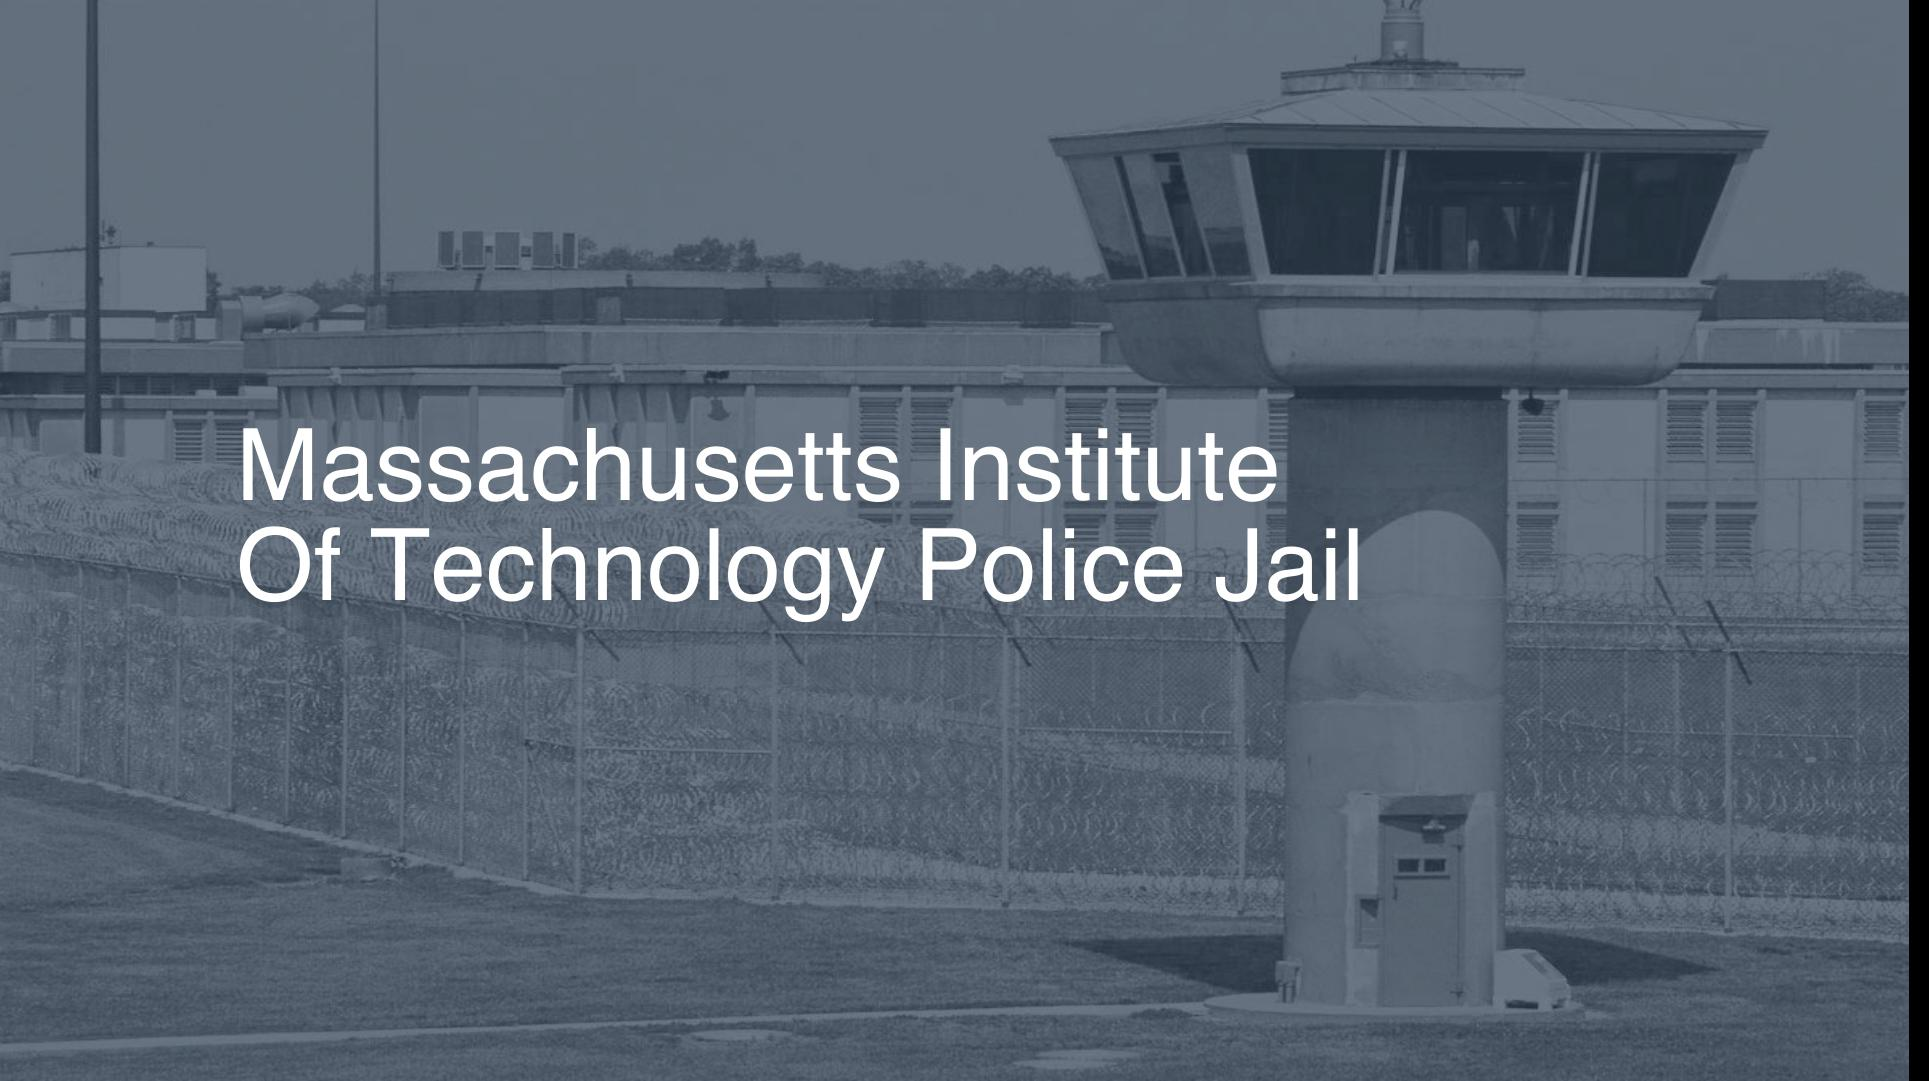 Massachusetts Institute of Technology Police Jail correctional facility picture